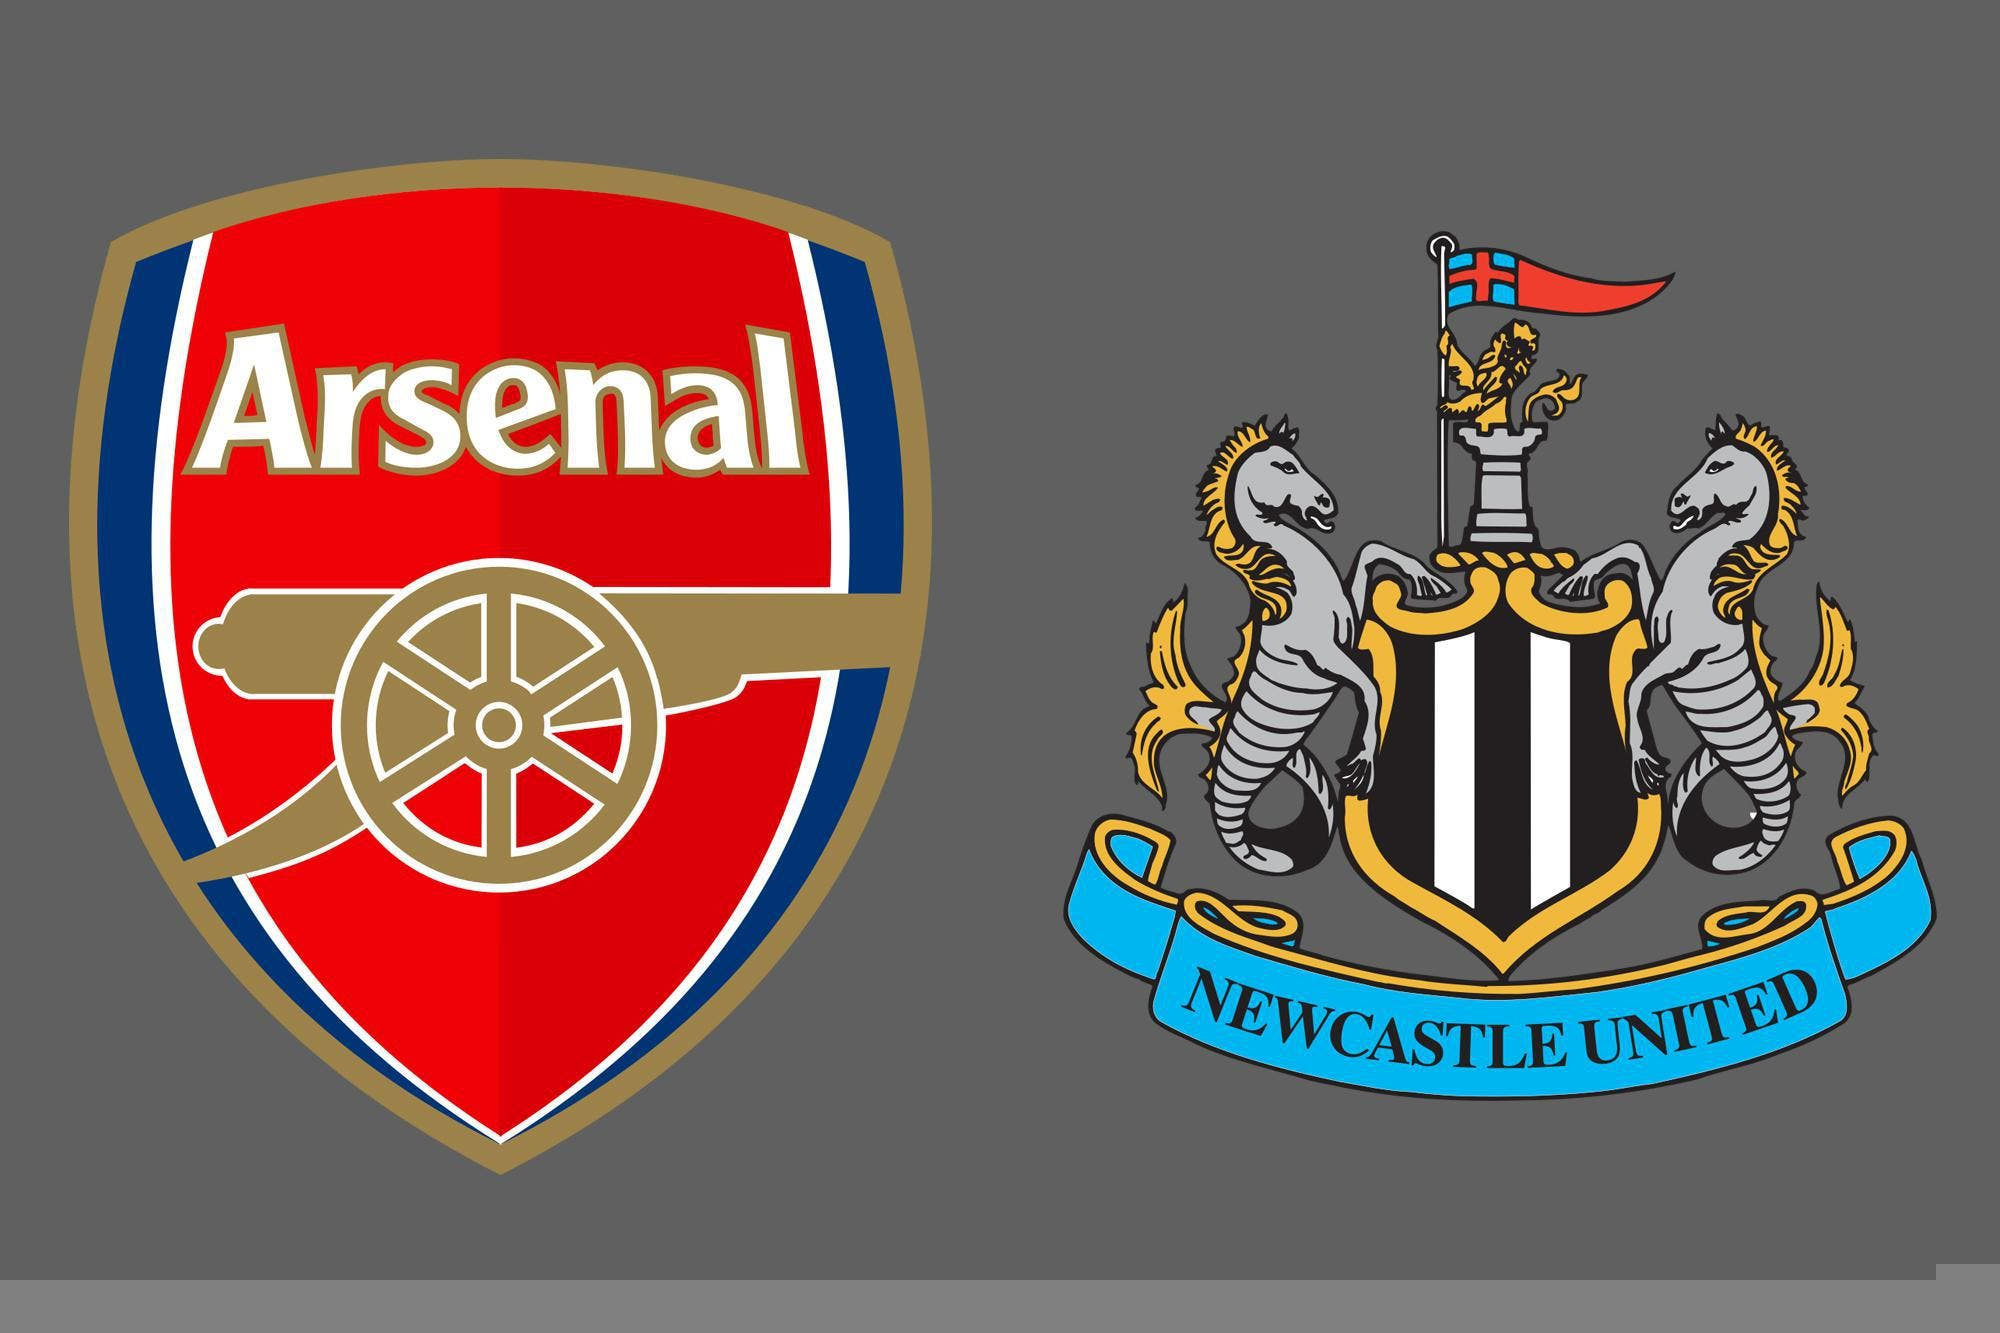 Premier League de Inglaterra: Arsenal venció por 3-0 a Newcastle como local